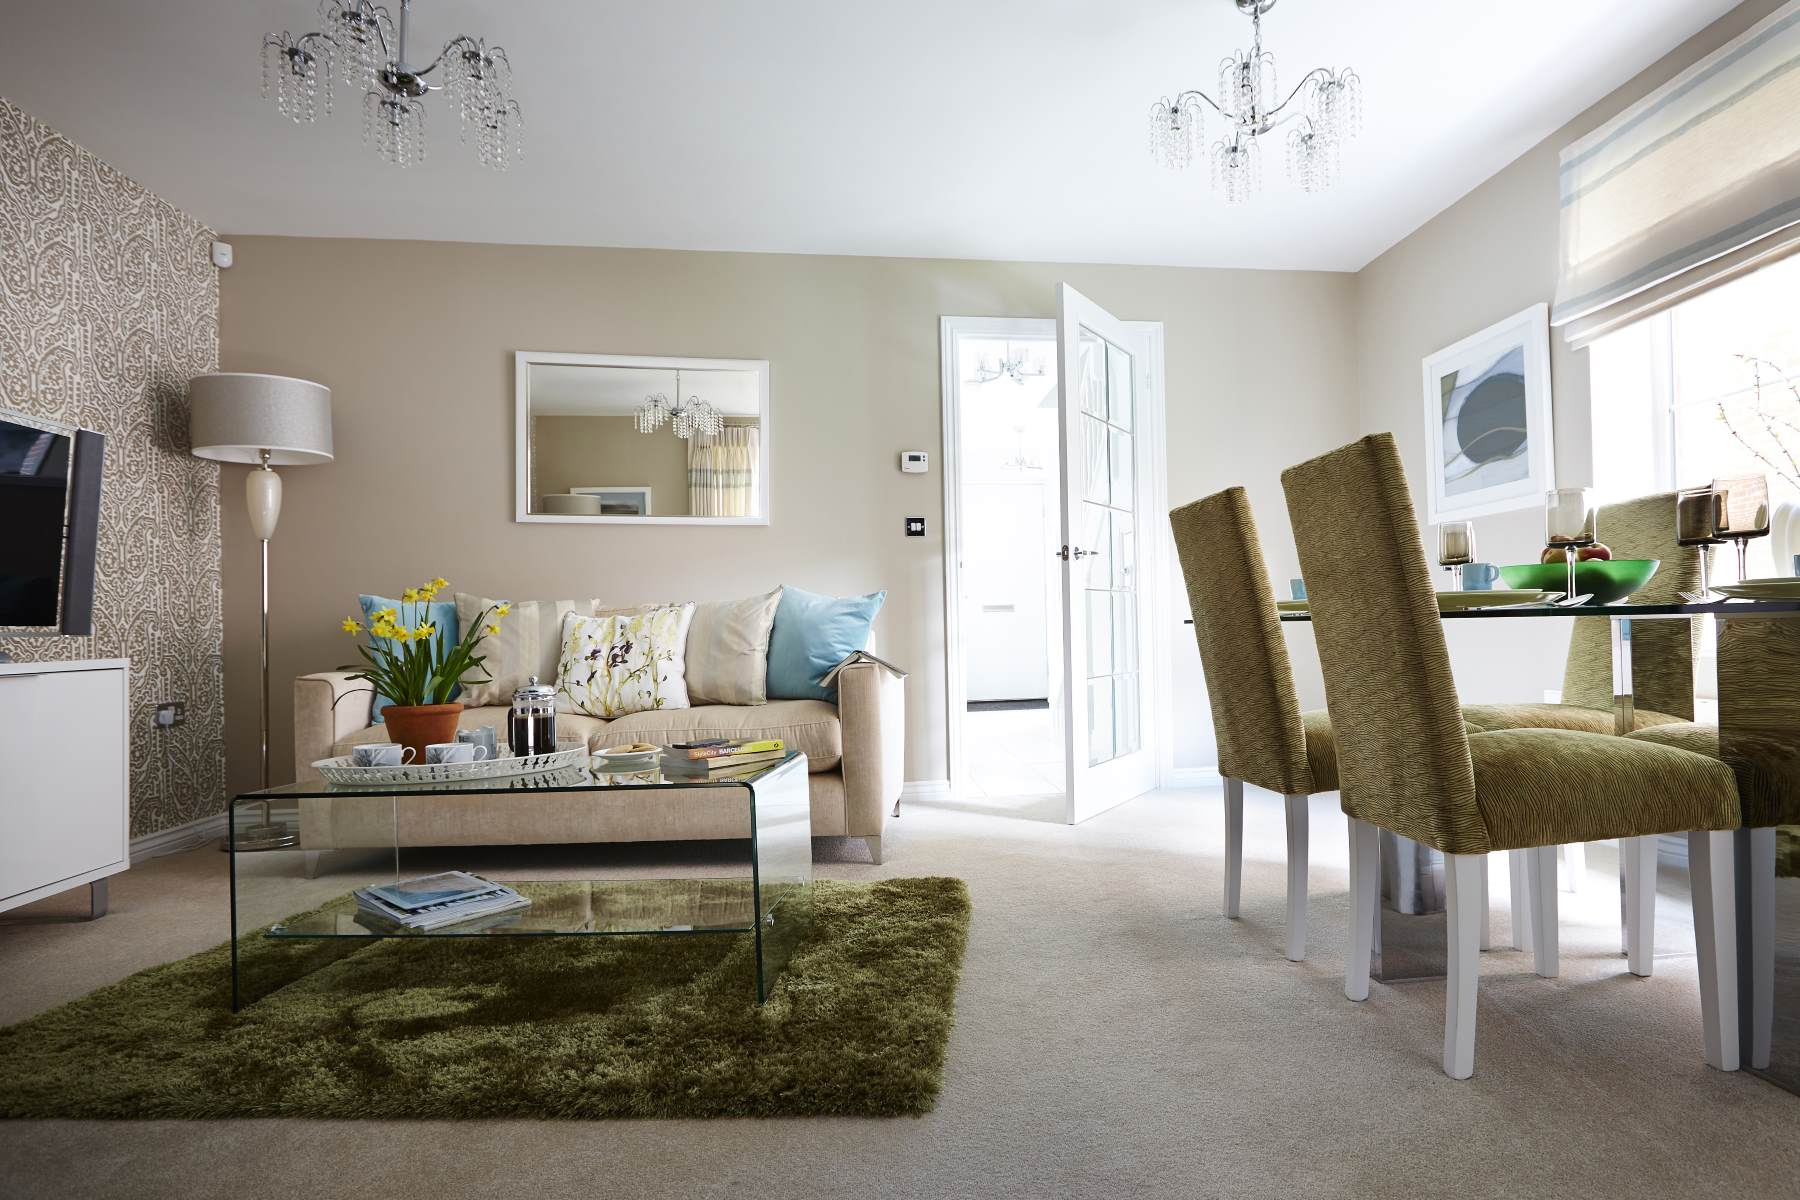 Typical Taylor Wimpey home - Living/dining area